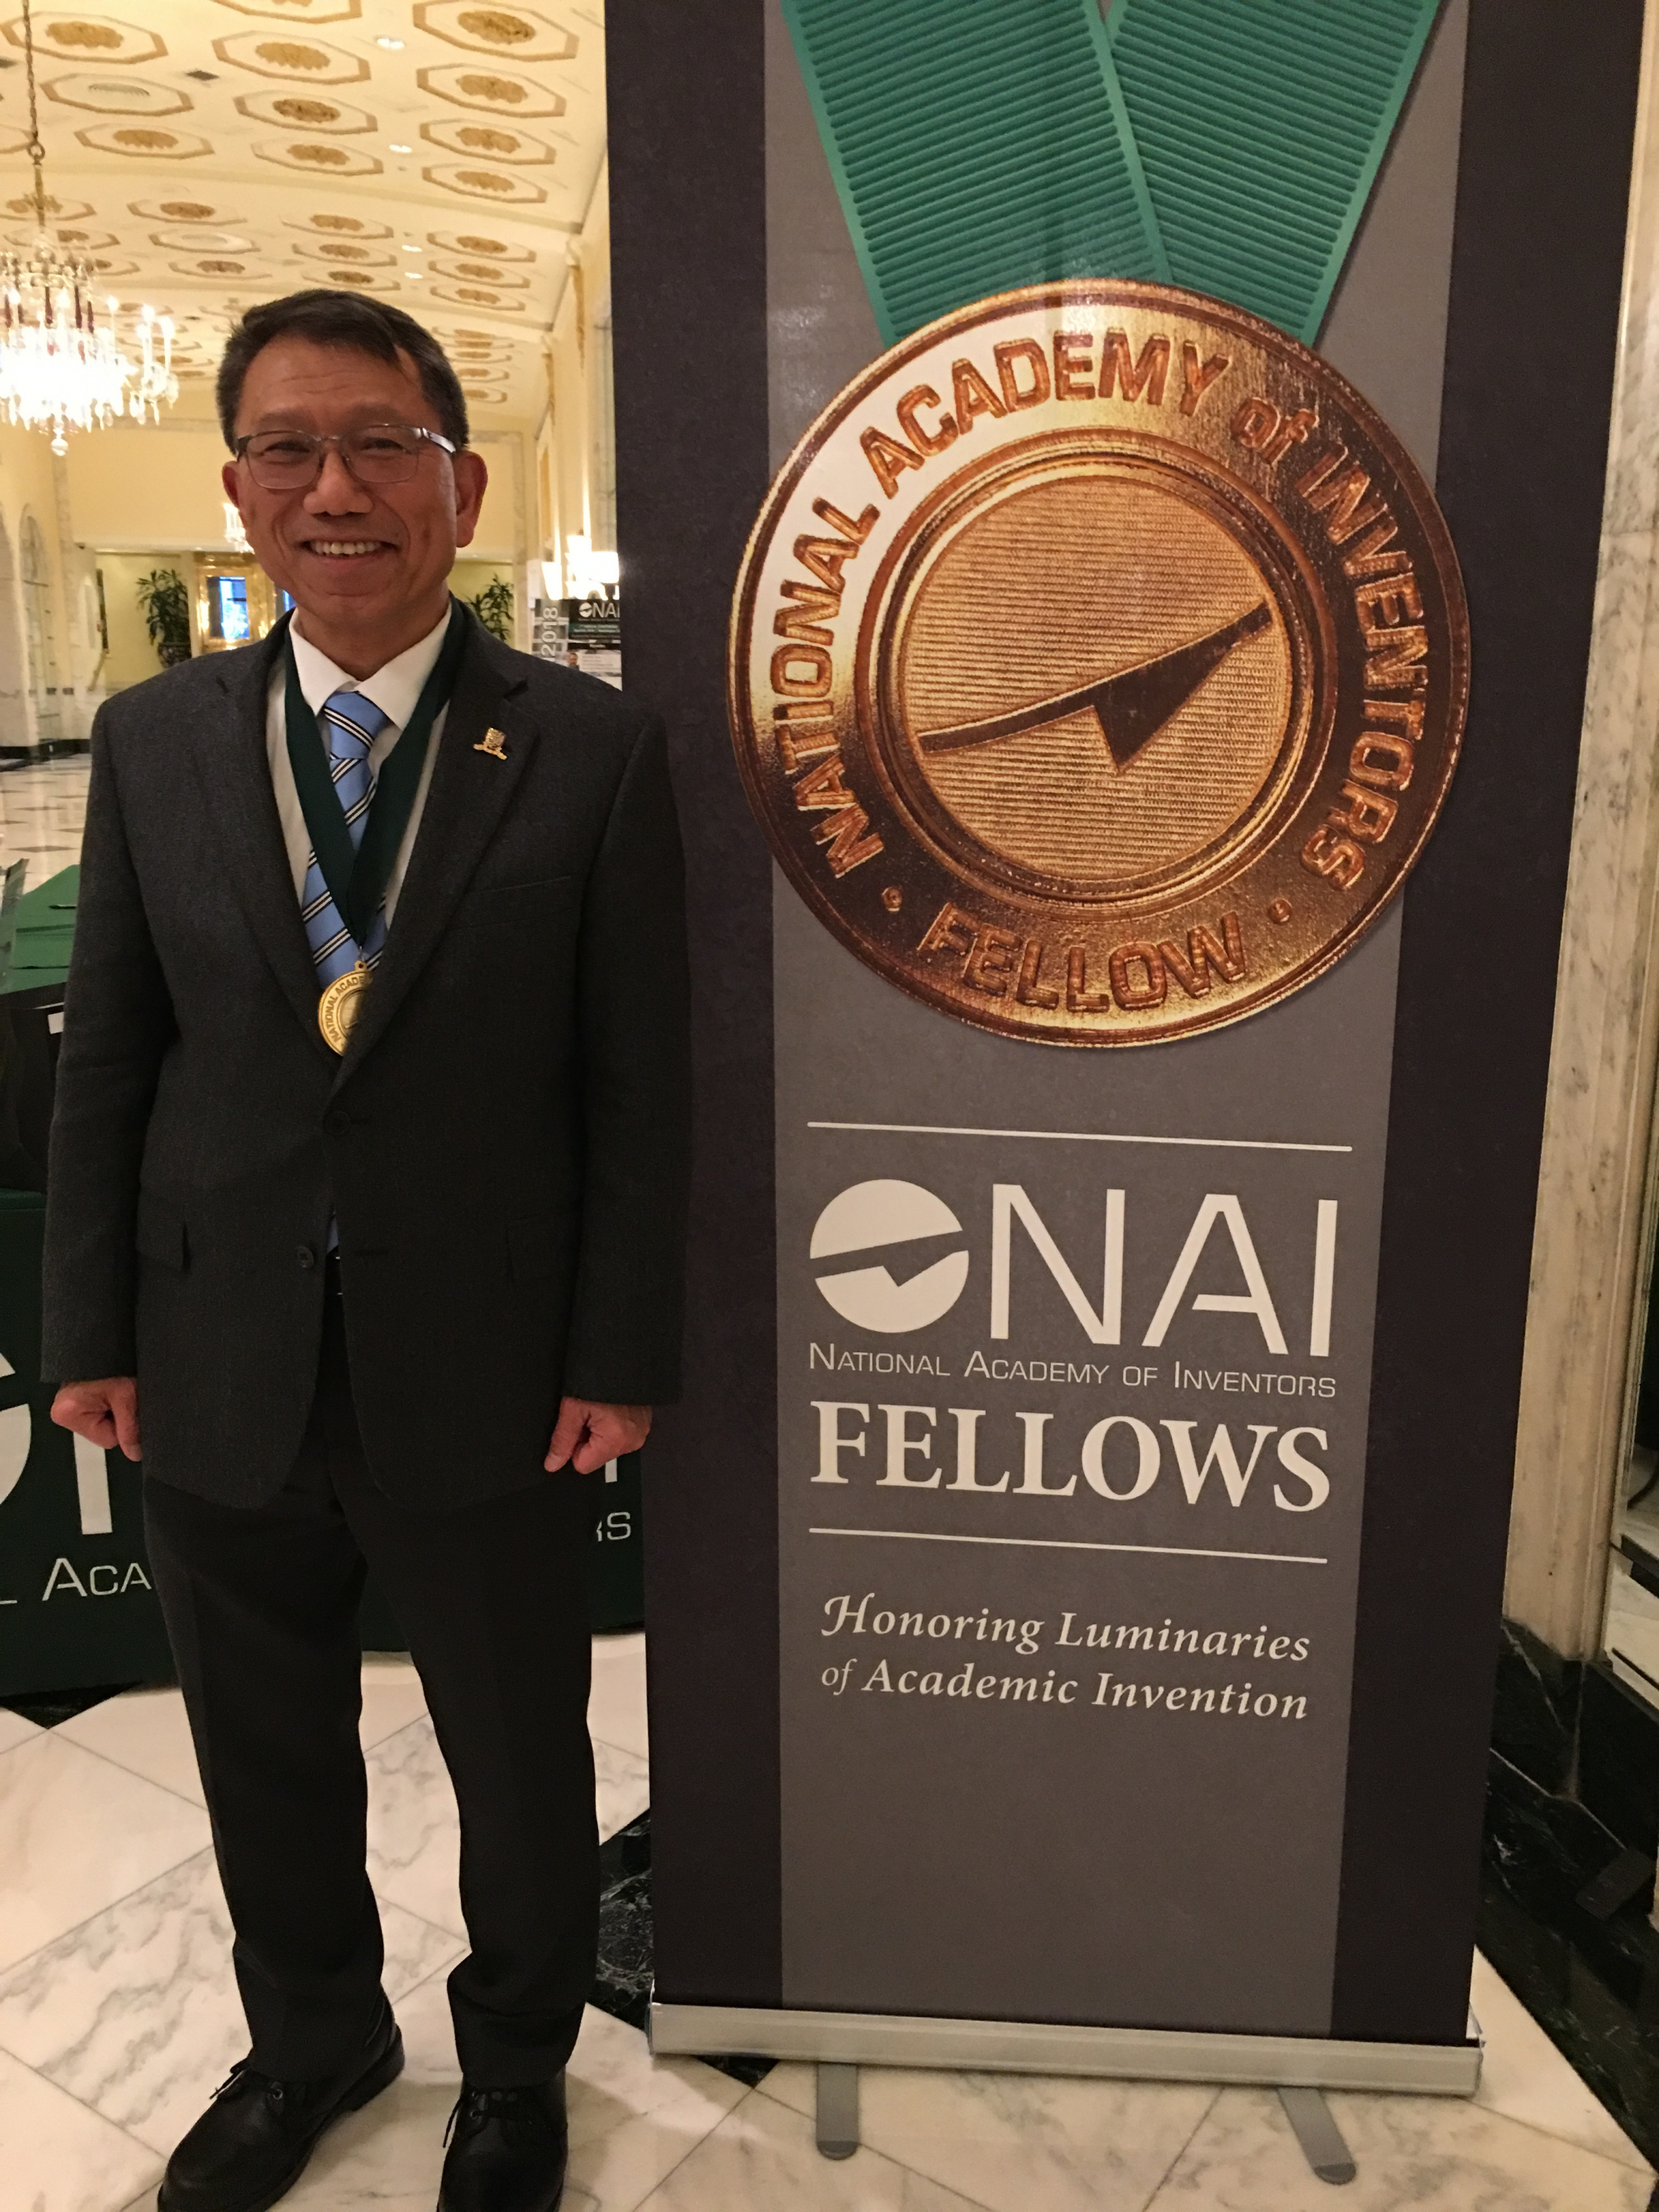 Professor Rocky S. Tuan, Vice-Chancellor and President of CUHK, Lee Quo Wei and Lee Yick Hoi Lun Professor of Tissue Engineering and Regenerative Medicine, was inducted as a Fellow into the National Academy of Inventors (NAI) in recognition of his prolific spirit of innovation in creating and facilitating outstanding inventions that have made a tangible impact on the quality of life, economic development and the welfare of society